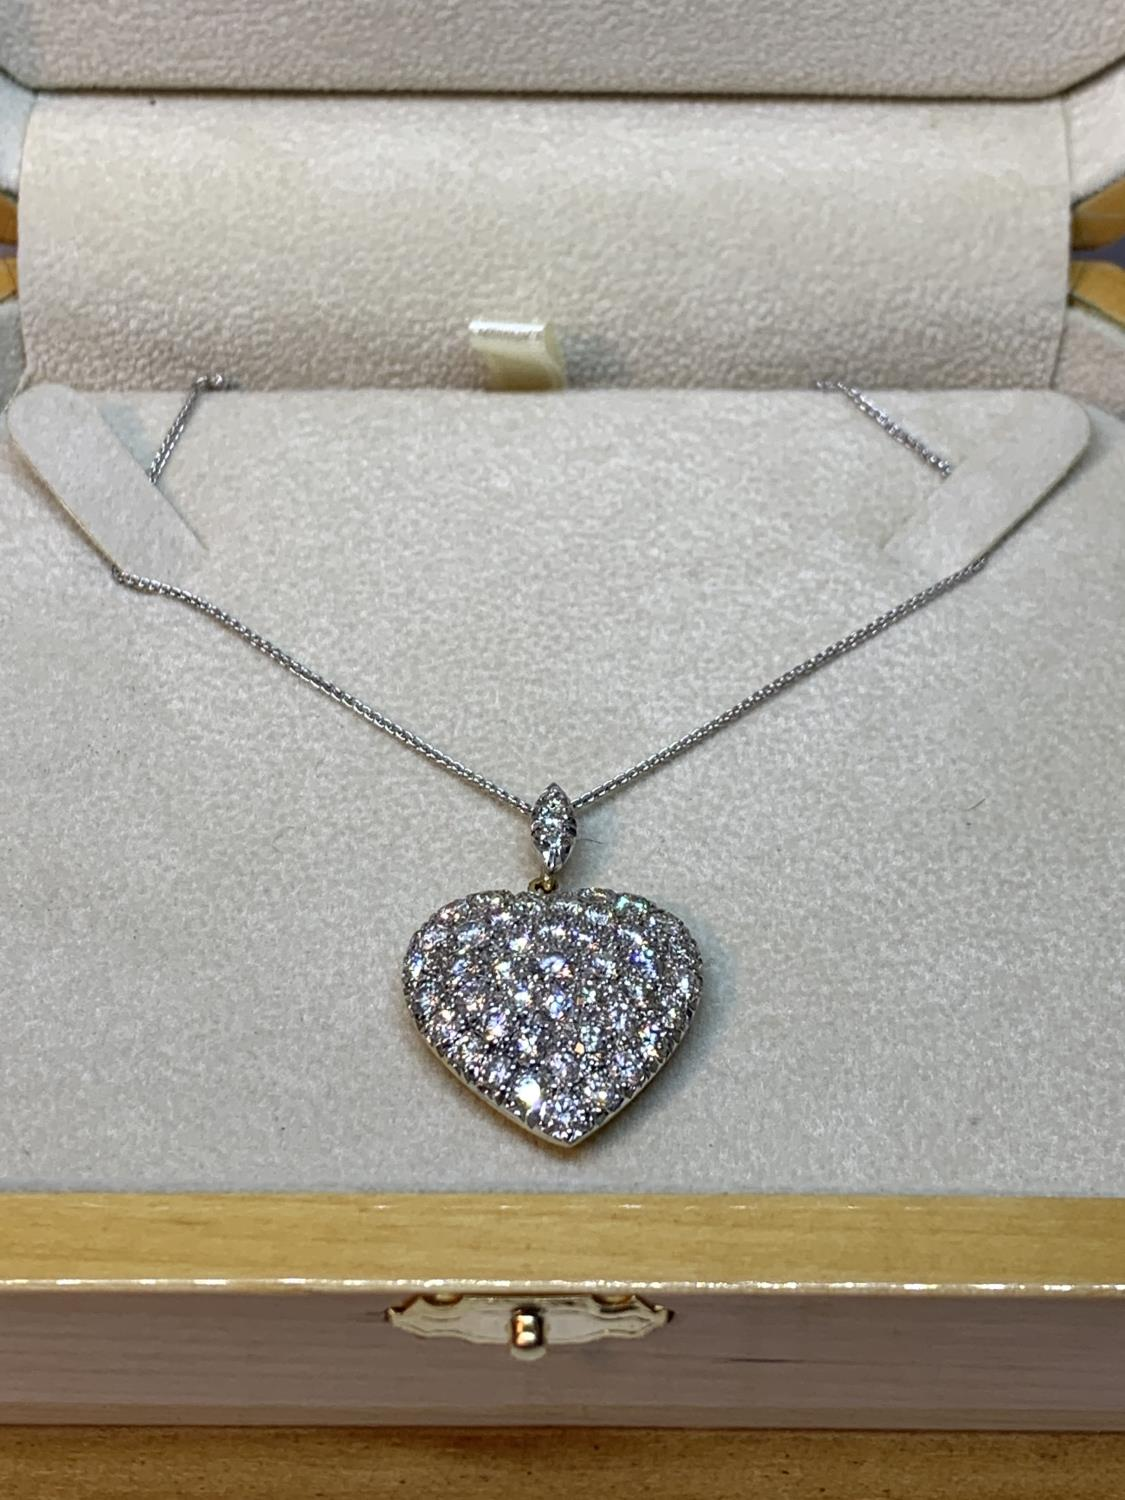 A 15 CARAT WHITE AND YELLOW GOLD LARGE DIAMOND ENCRUSTED HEART PENDANT WITH CHAIN LENGTH 44CM IN A - Image 2 of 8